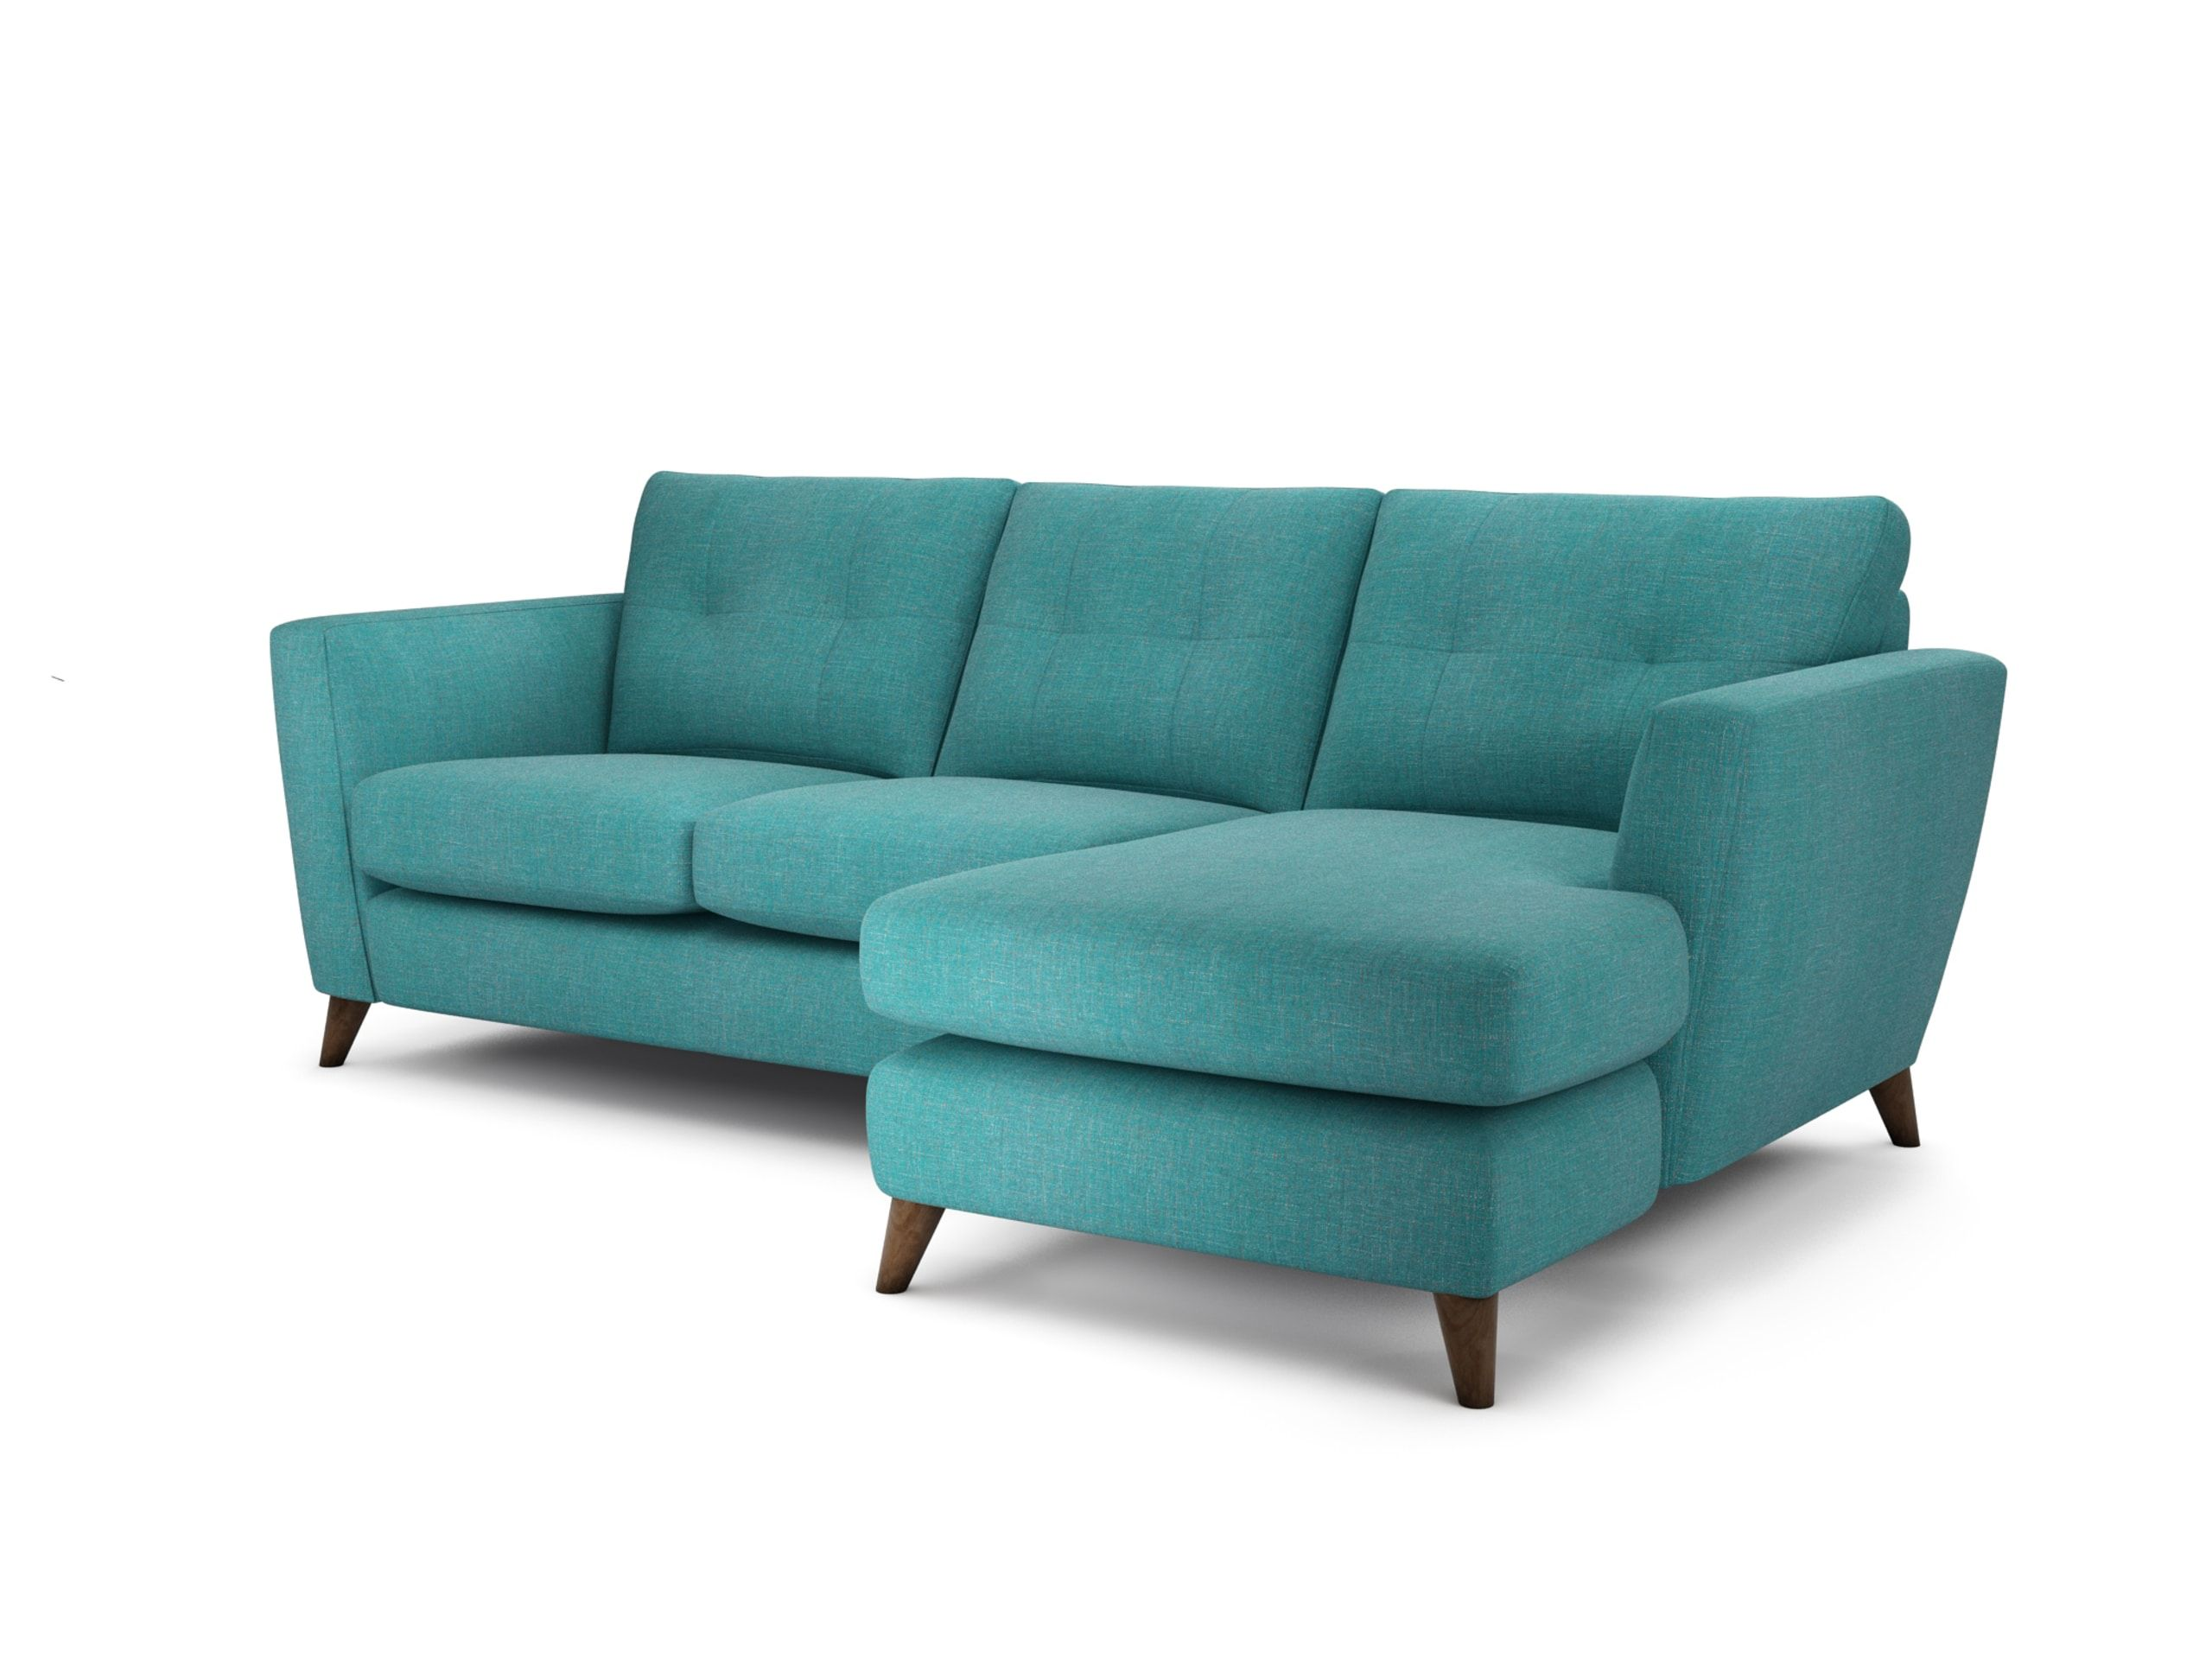 Holly Chaise End Sofa In Tweedy Weave Dragon Back Theloungeco Chair Trend Turquoise Teal Velvet Statement Interiorinspiration Lounge